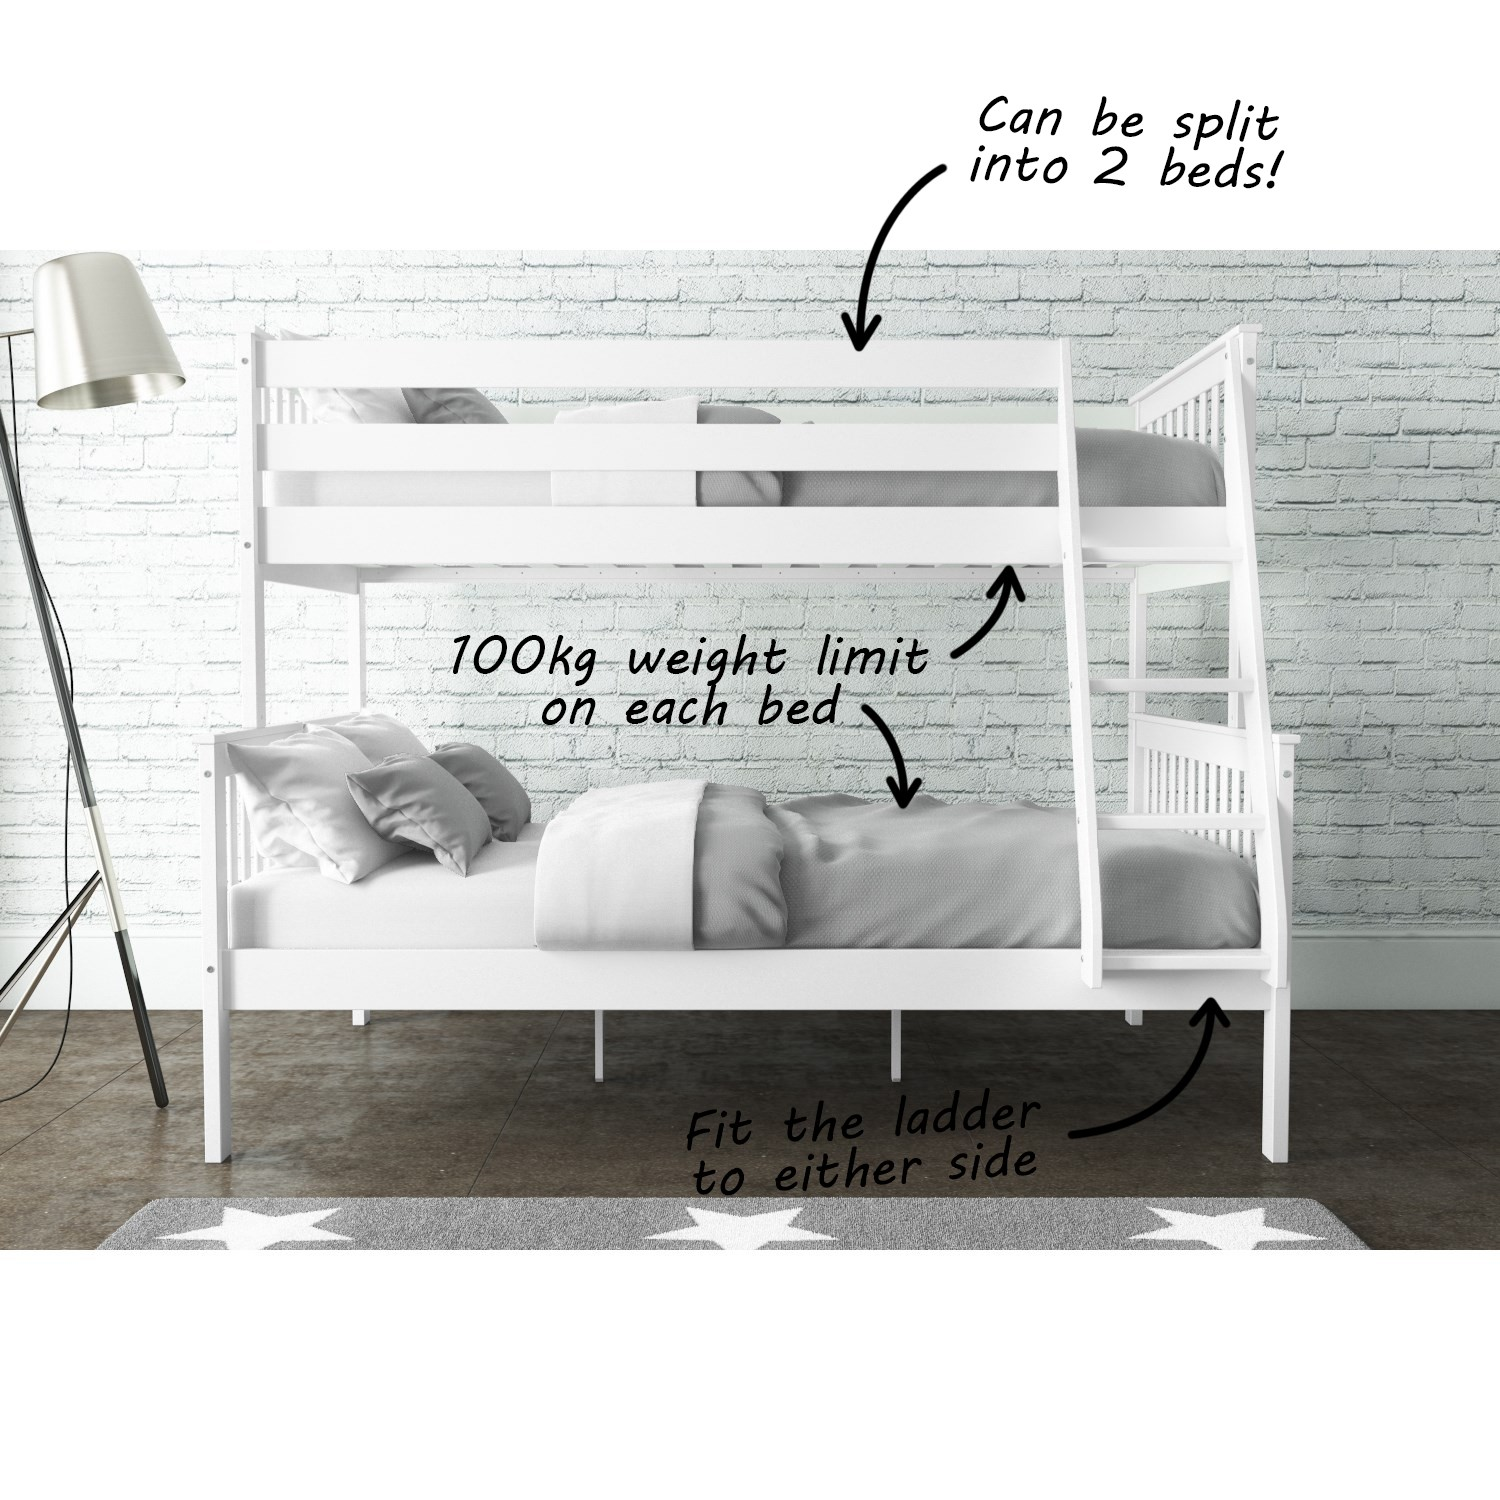 893b68edb4a New High Quality Oxford Triple Bunk Bed in White Small Double Bedroom  Furniture. New High Quality Oxford Triple Bunk Bed in White Small Double ...